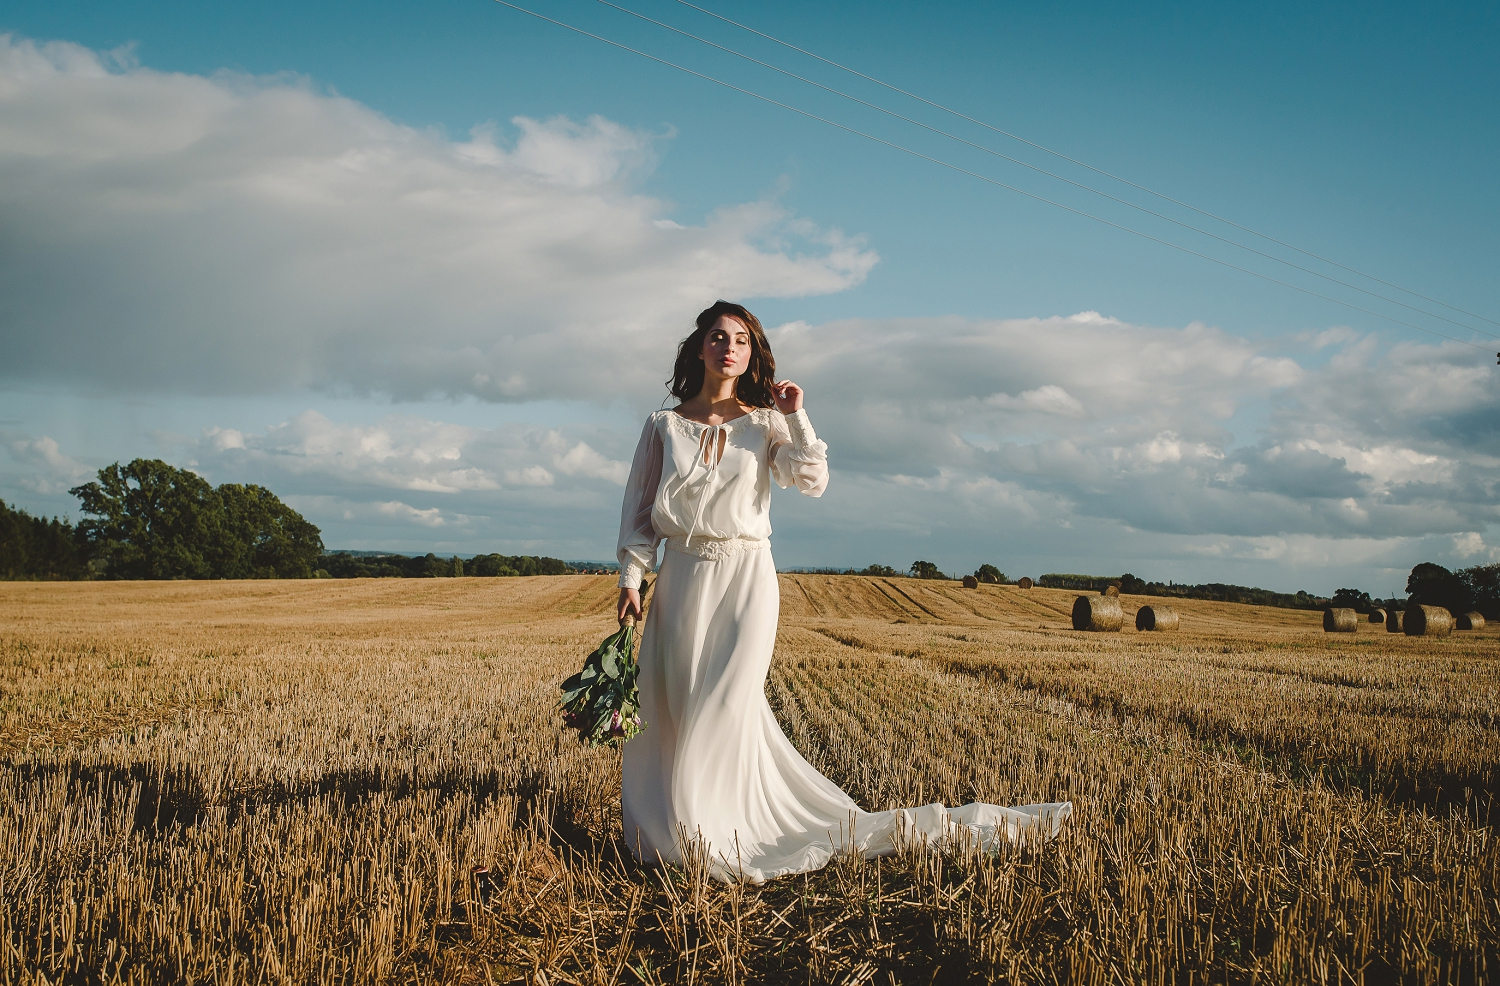 Curradine_bridal_Sept_17_amytiphoto_0108.jpg